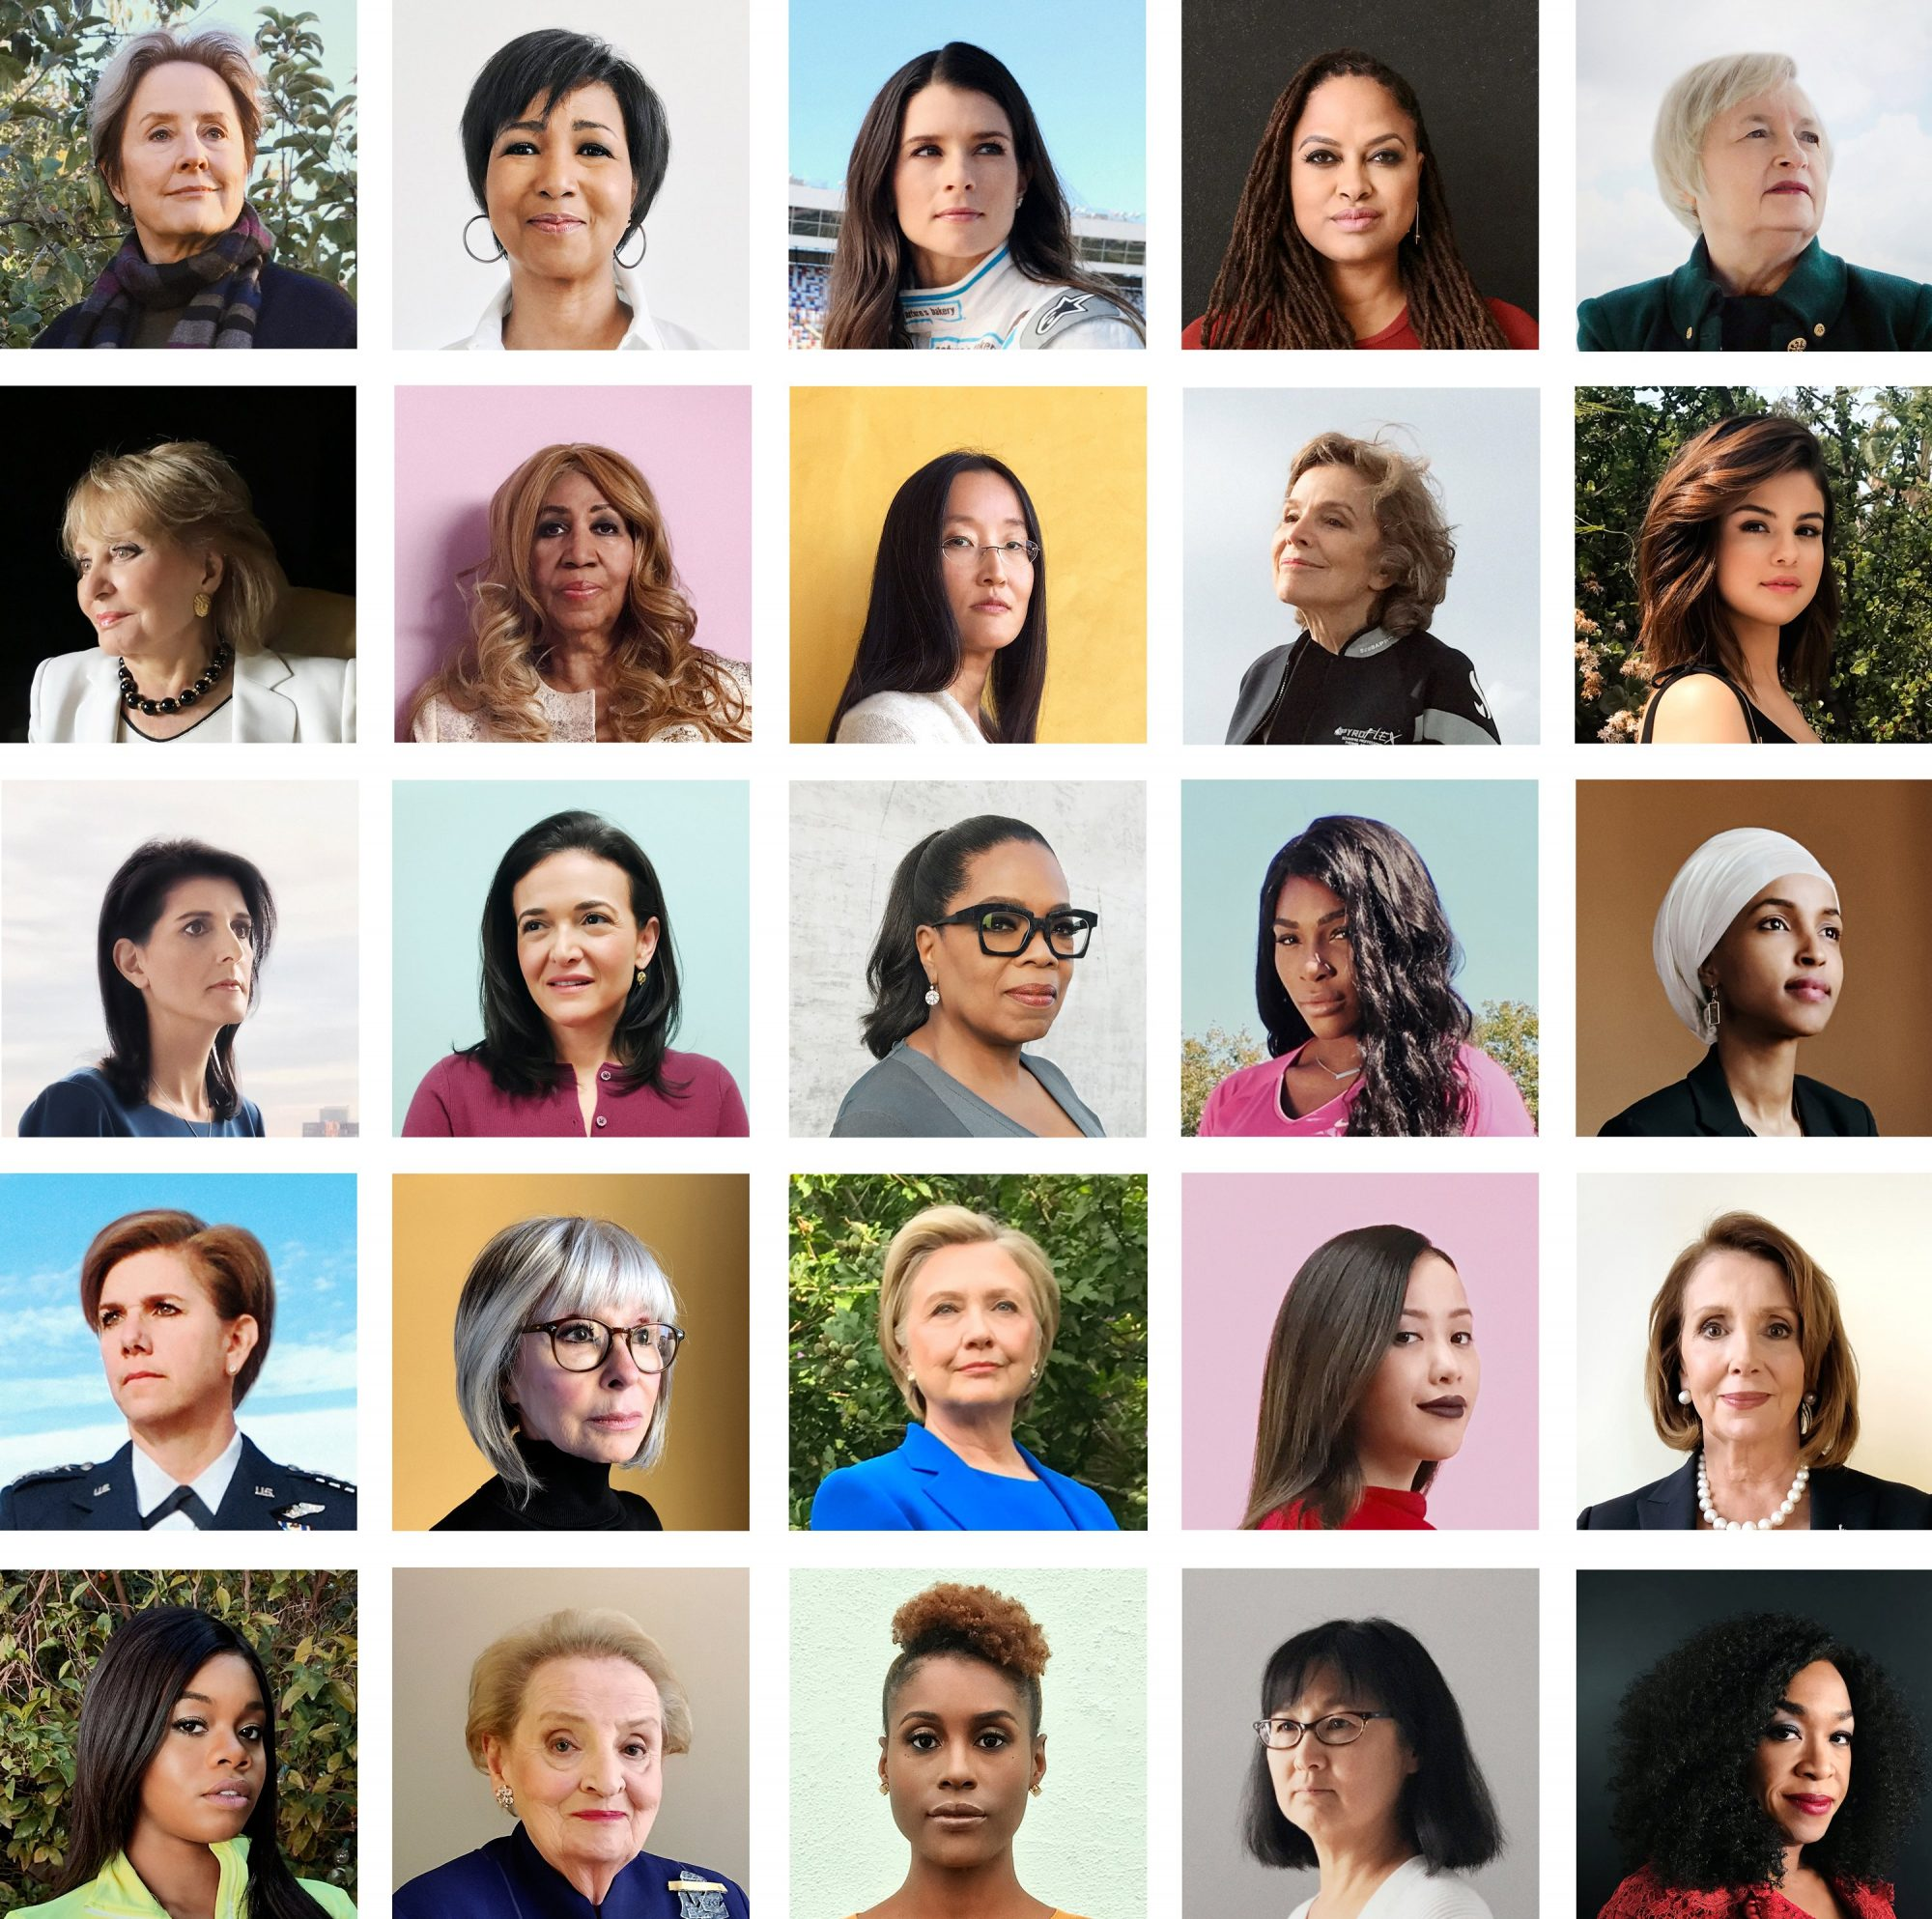 final-with-hillary-time-firsts-women-changing-the-world-2017-v2-square-for-video-gfx-copy